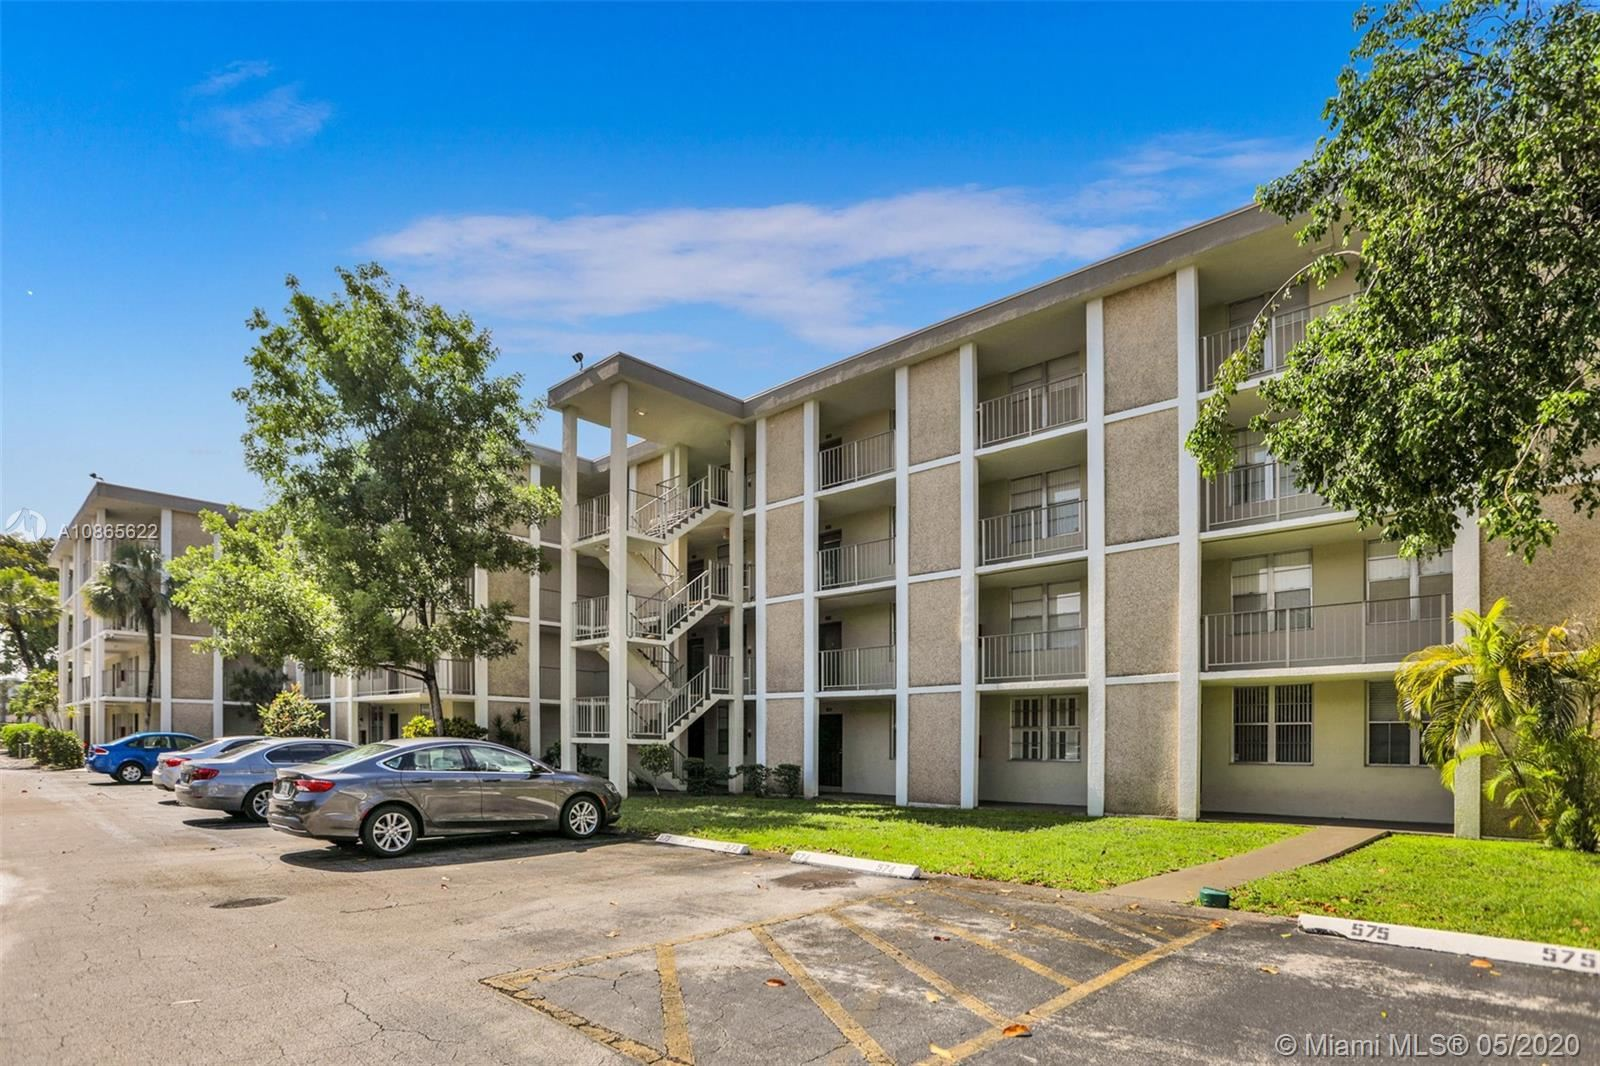 2999 NW 48th Ave #239, Lauderdale Lakes, FL 33313 - #: A10865622